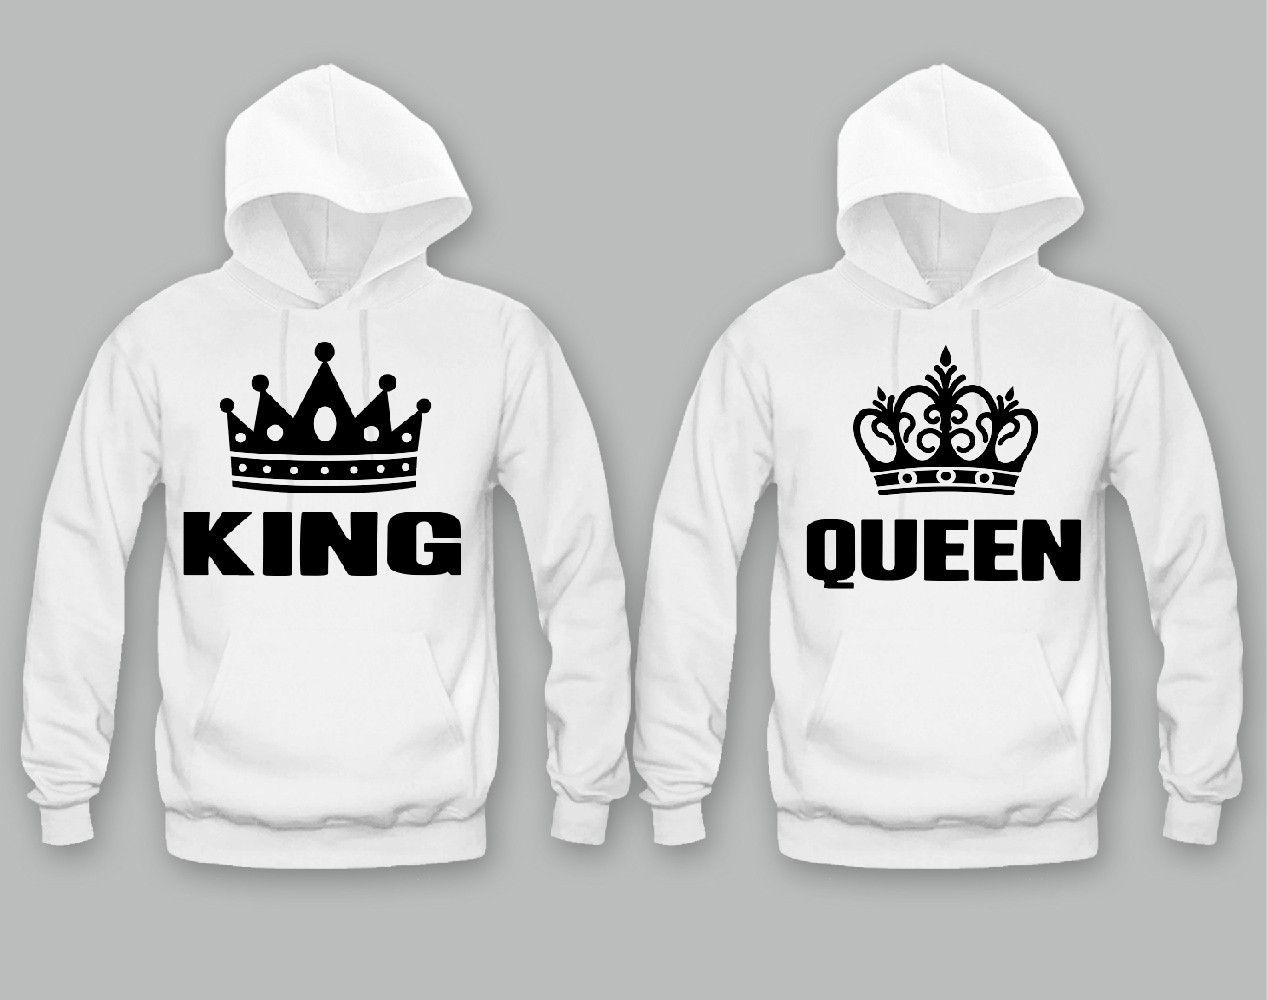 a88186d42b King and Queen Unisex Couple Matching Hoodies in 2019 | <3 ...